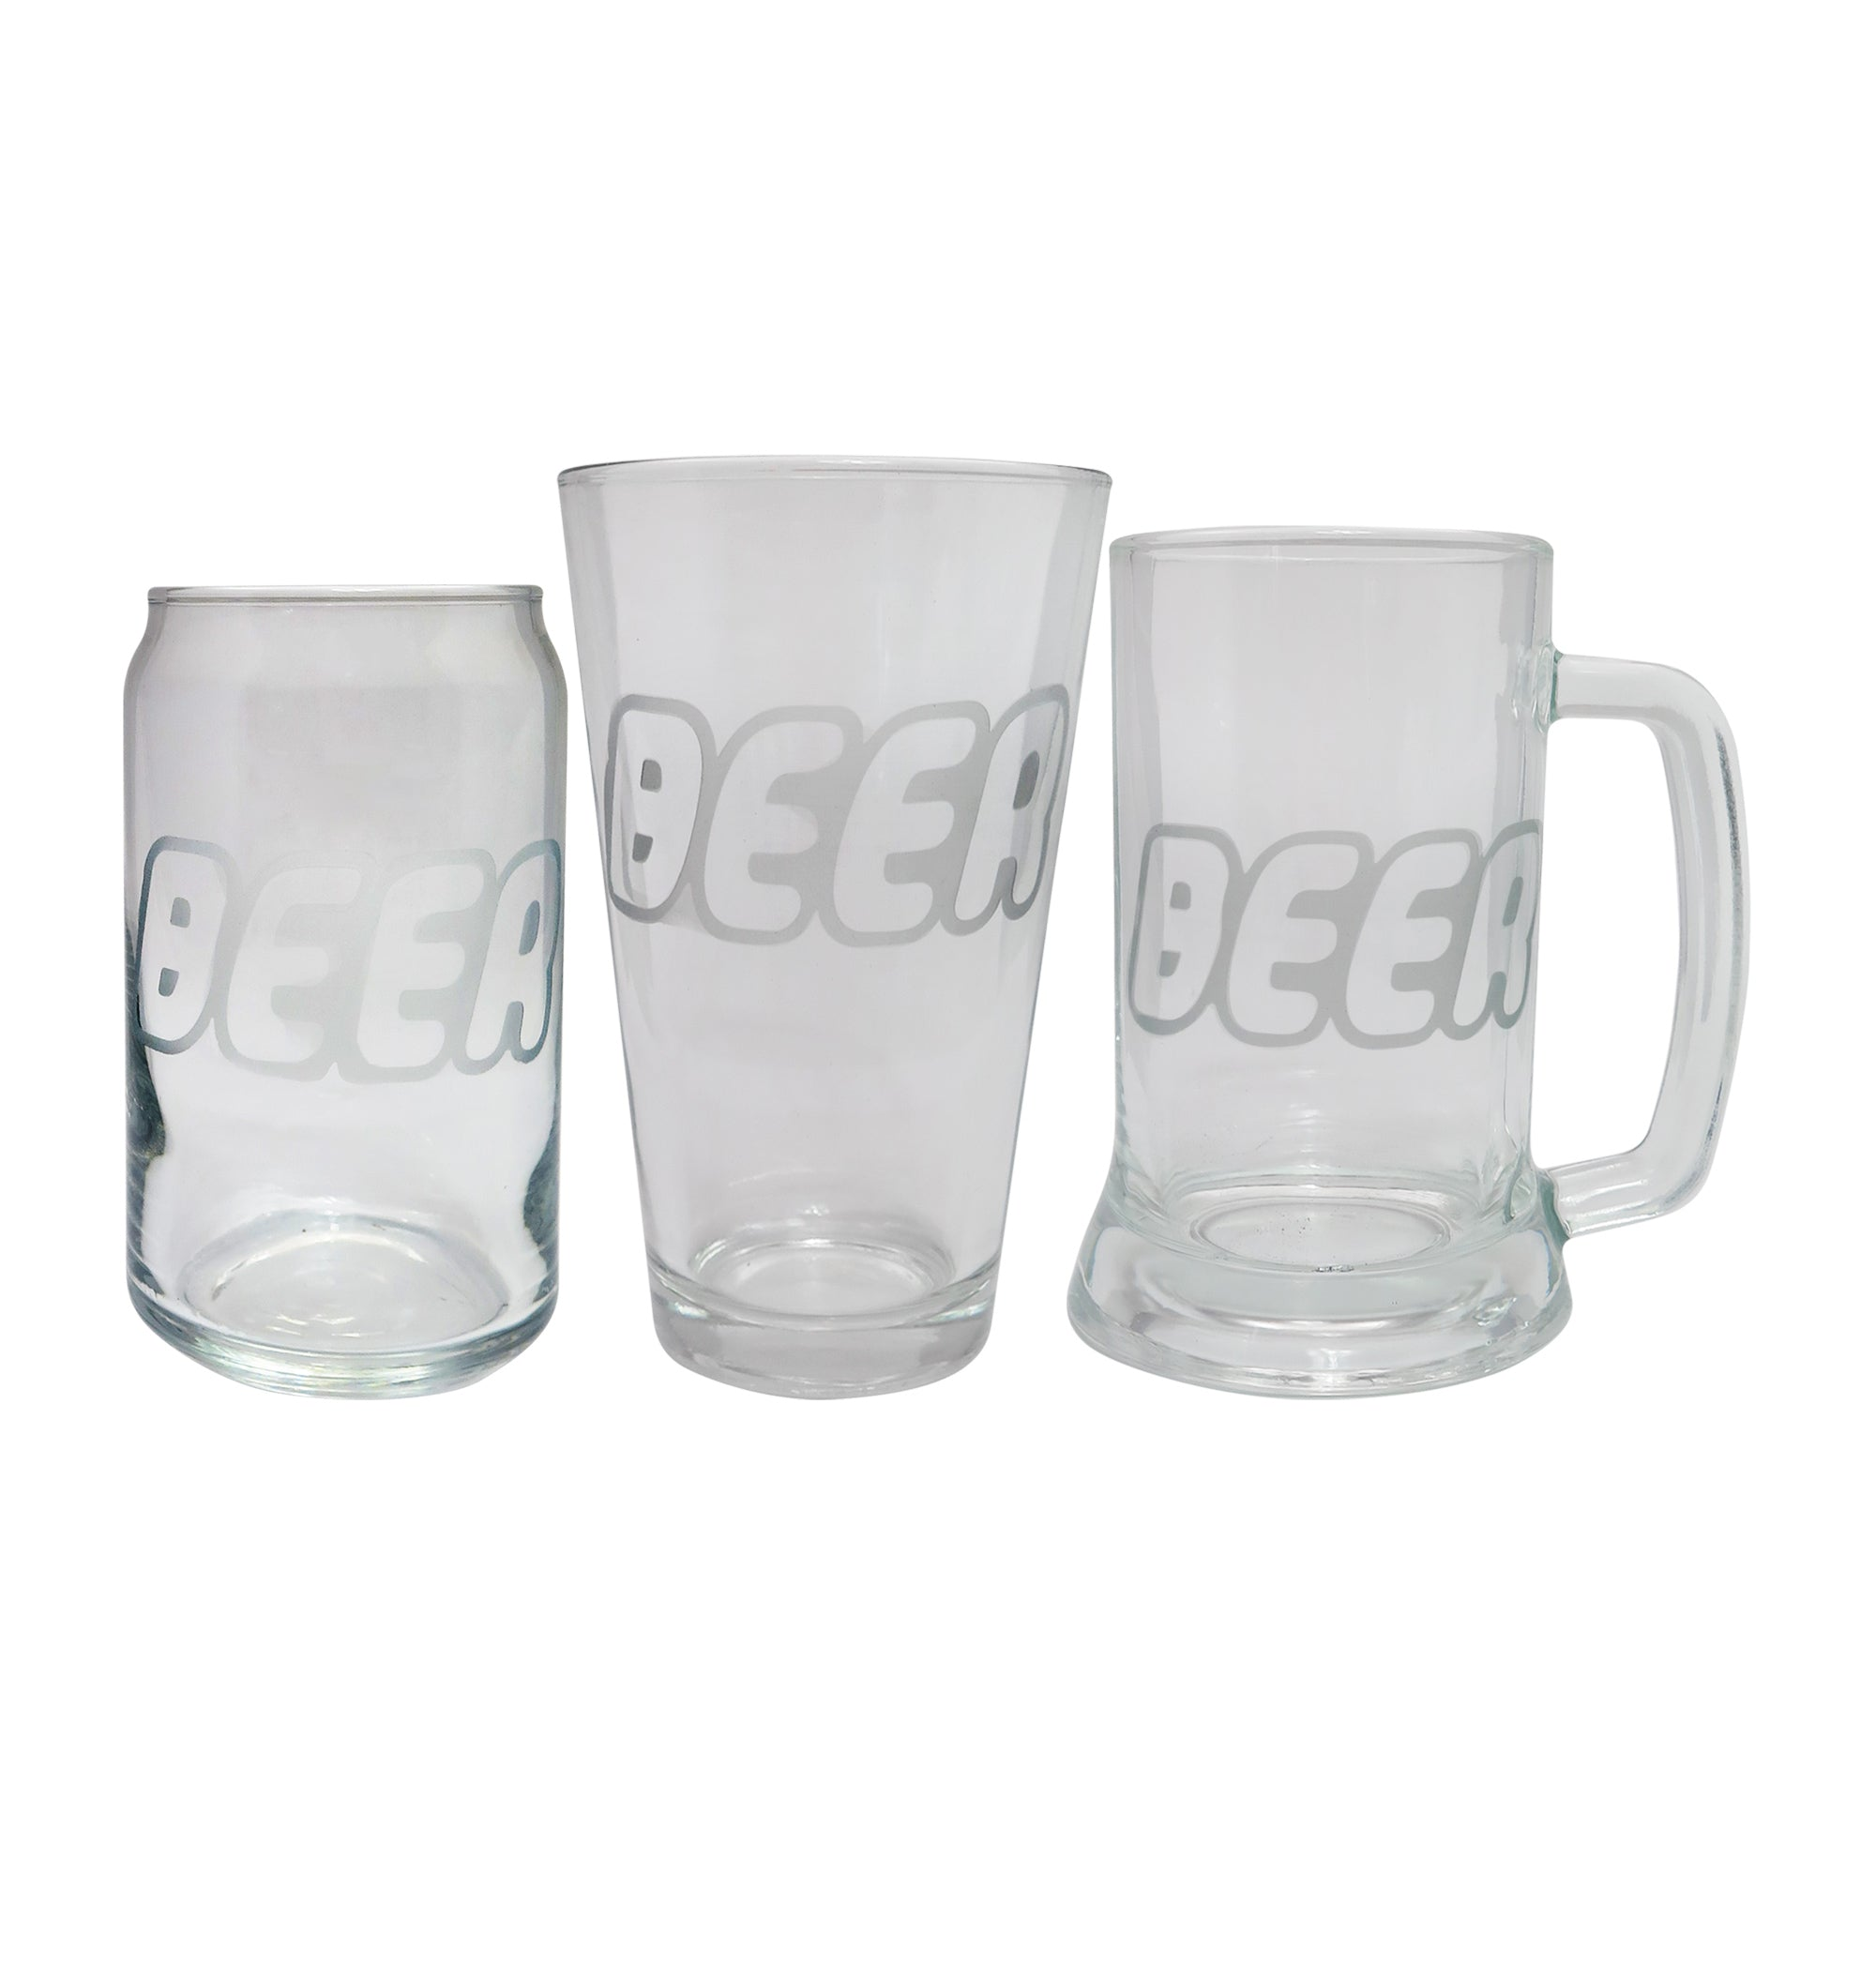 Beer Brick Etched Beer Glass